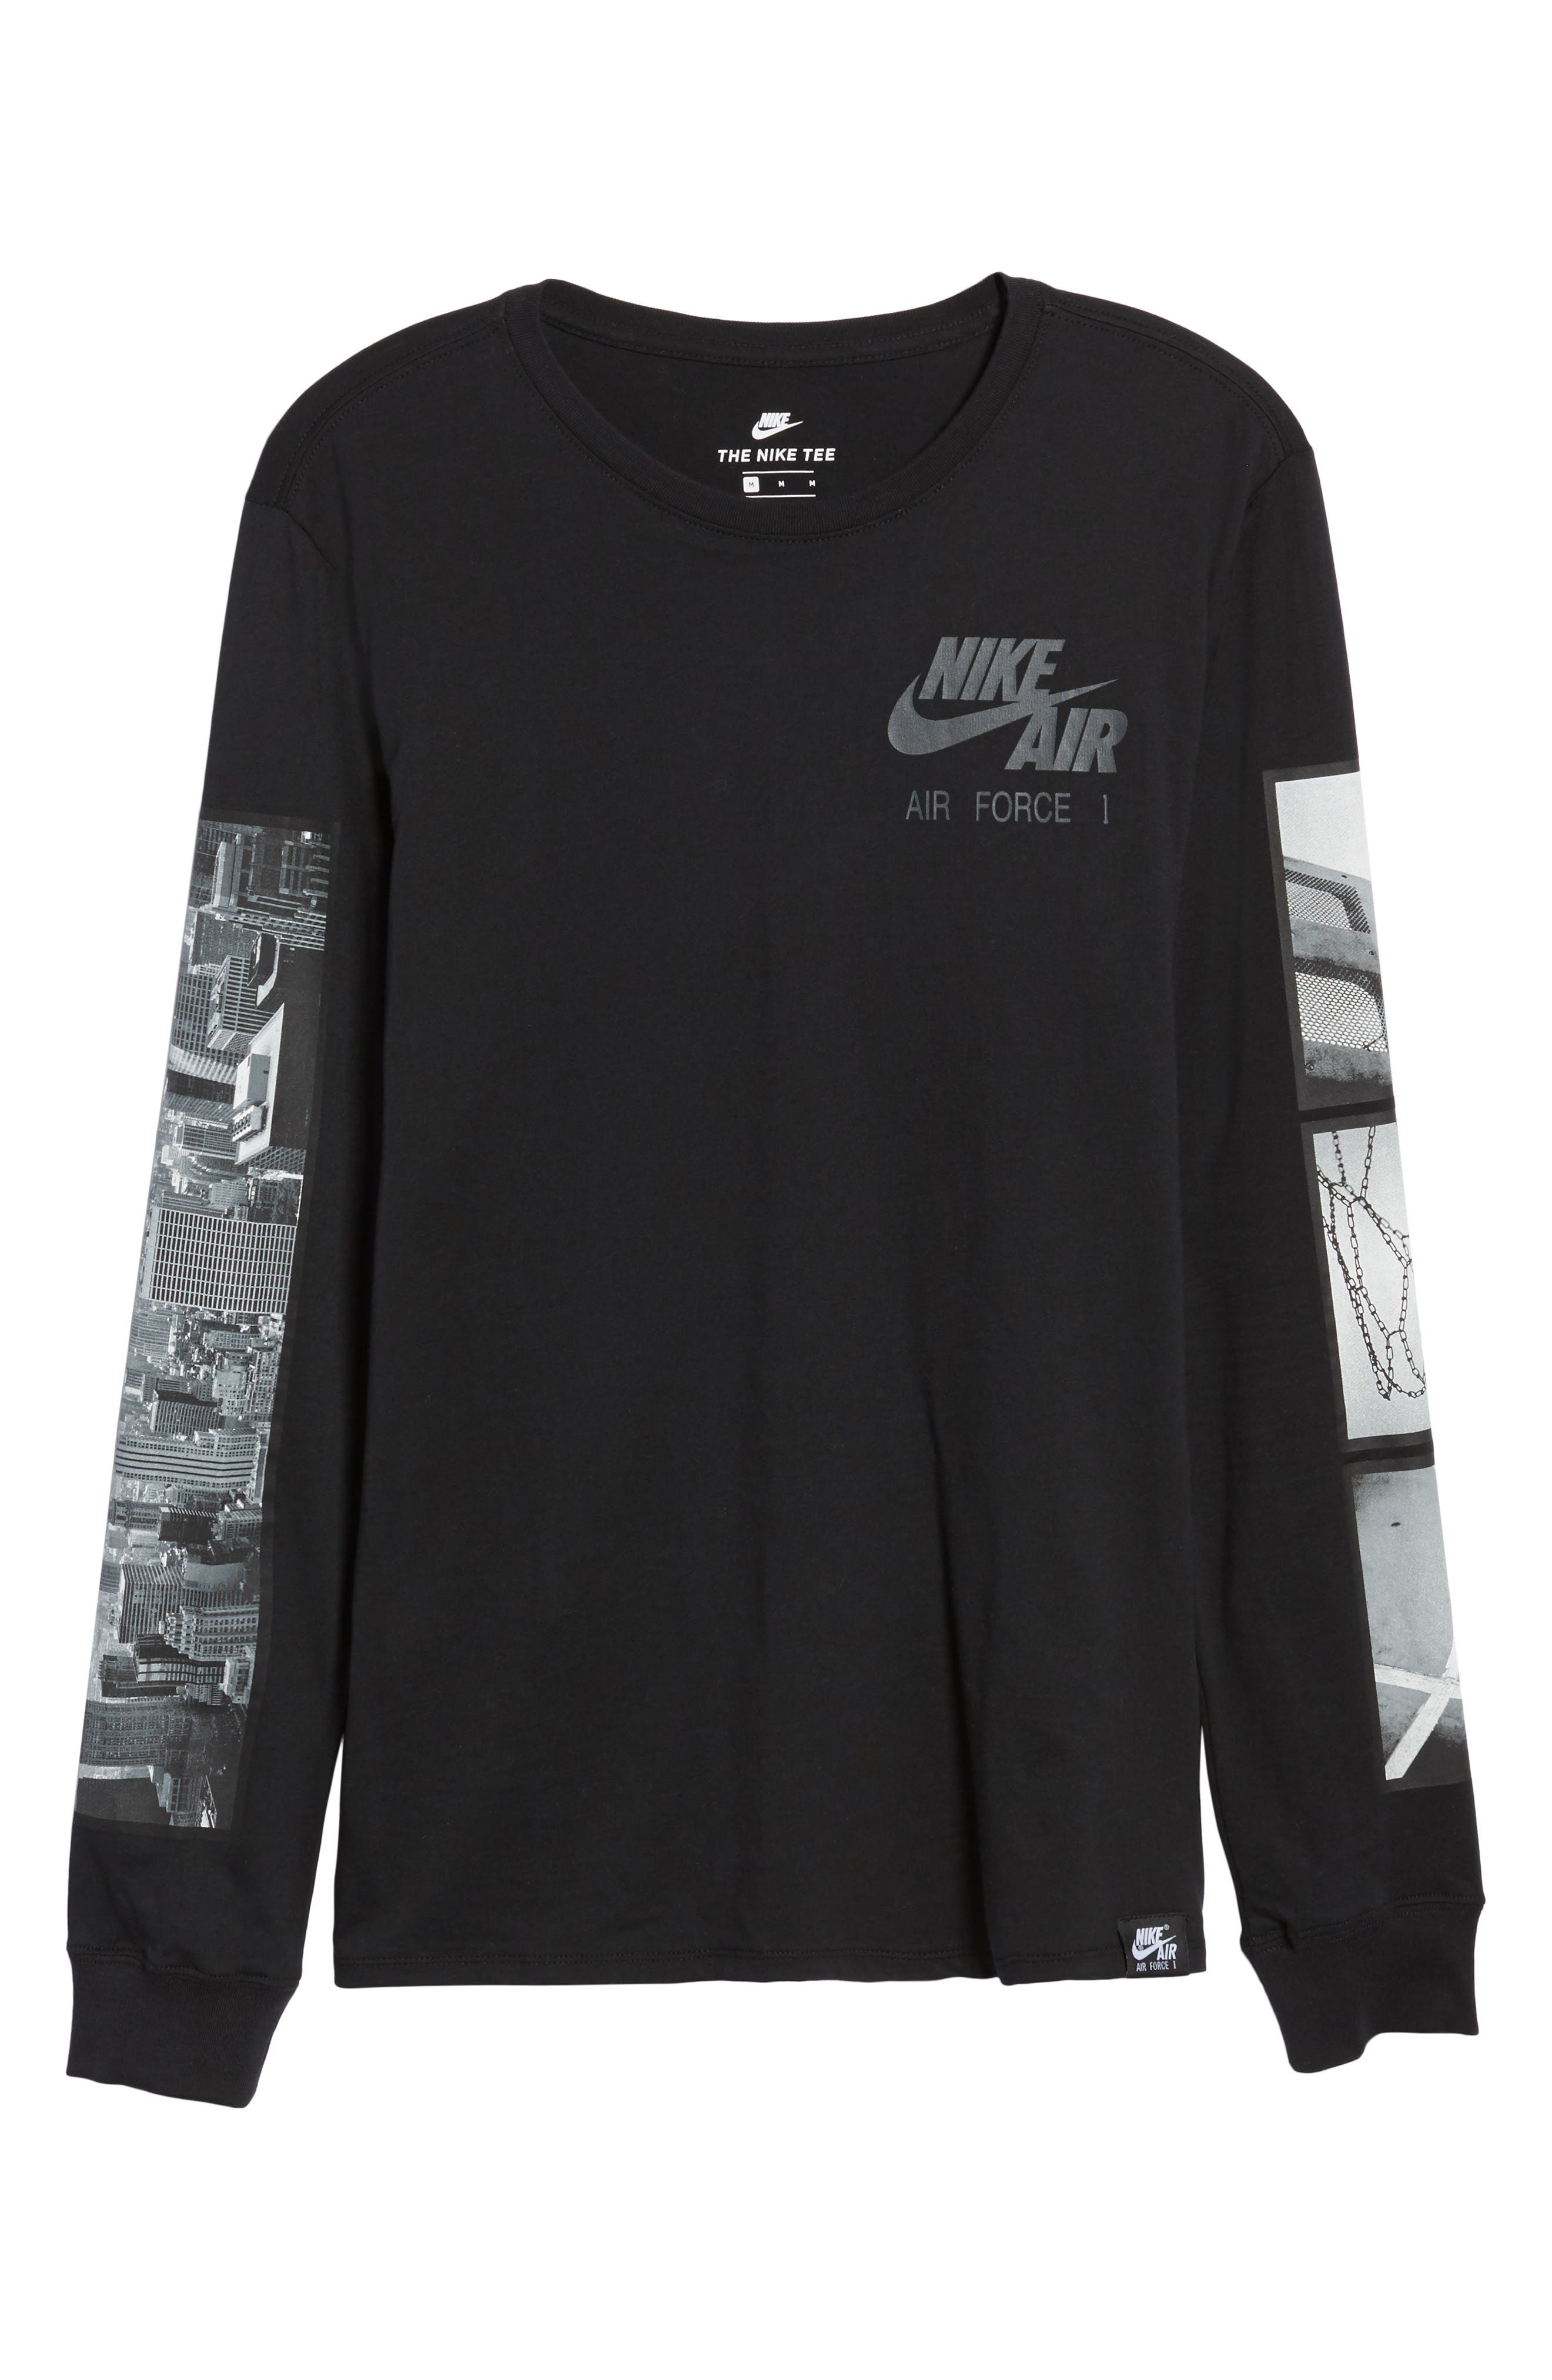 Air Force 1 Long Sleeve T-Shirt,                             Alternate thumbnail 6, color,                             010